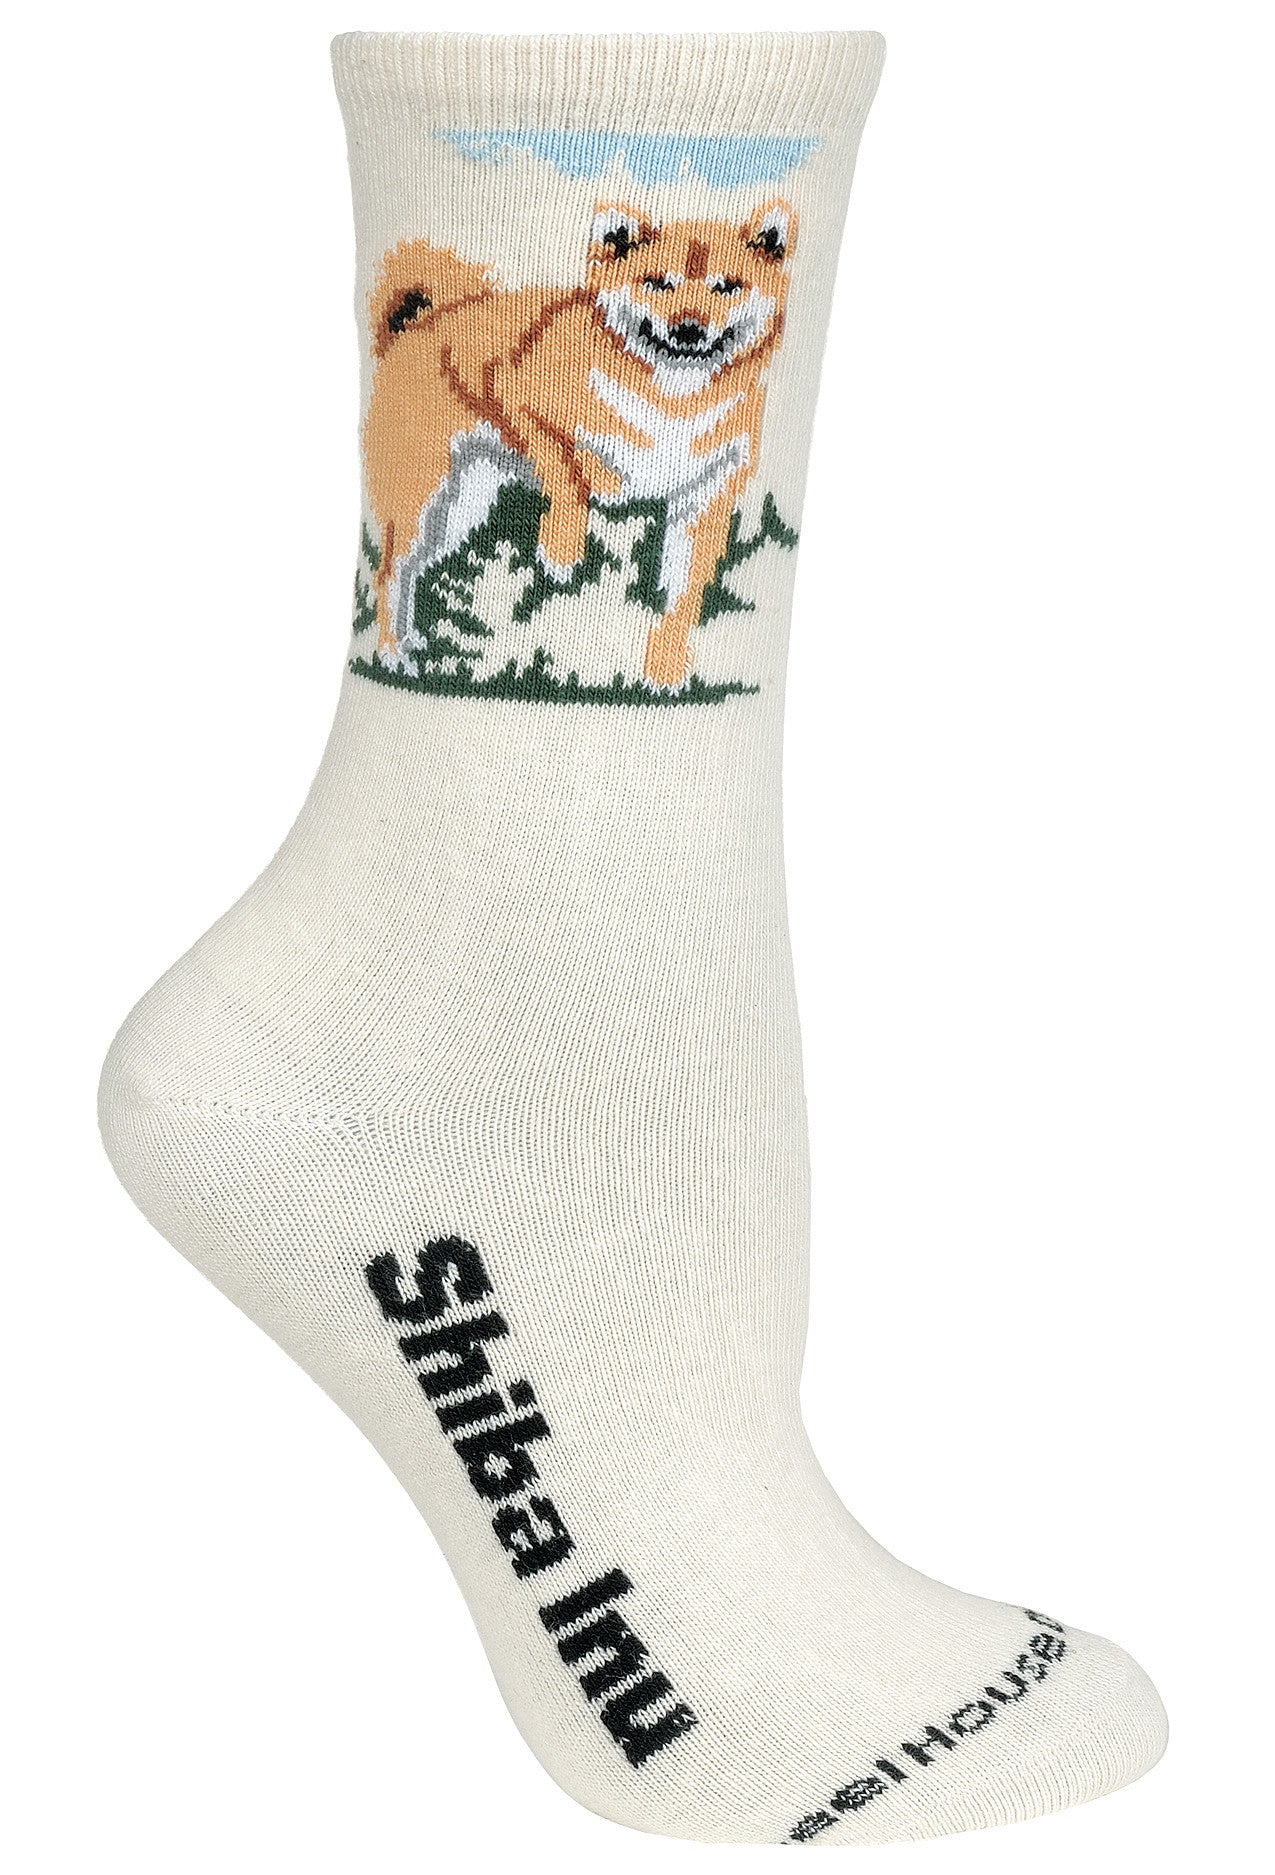 Shiba Inu on Natural Socks